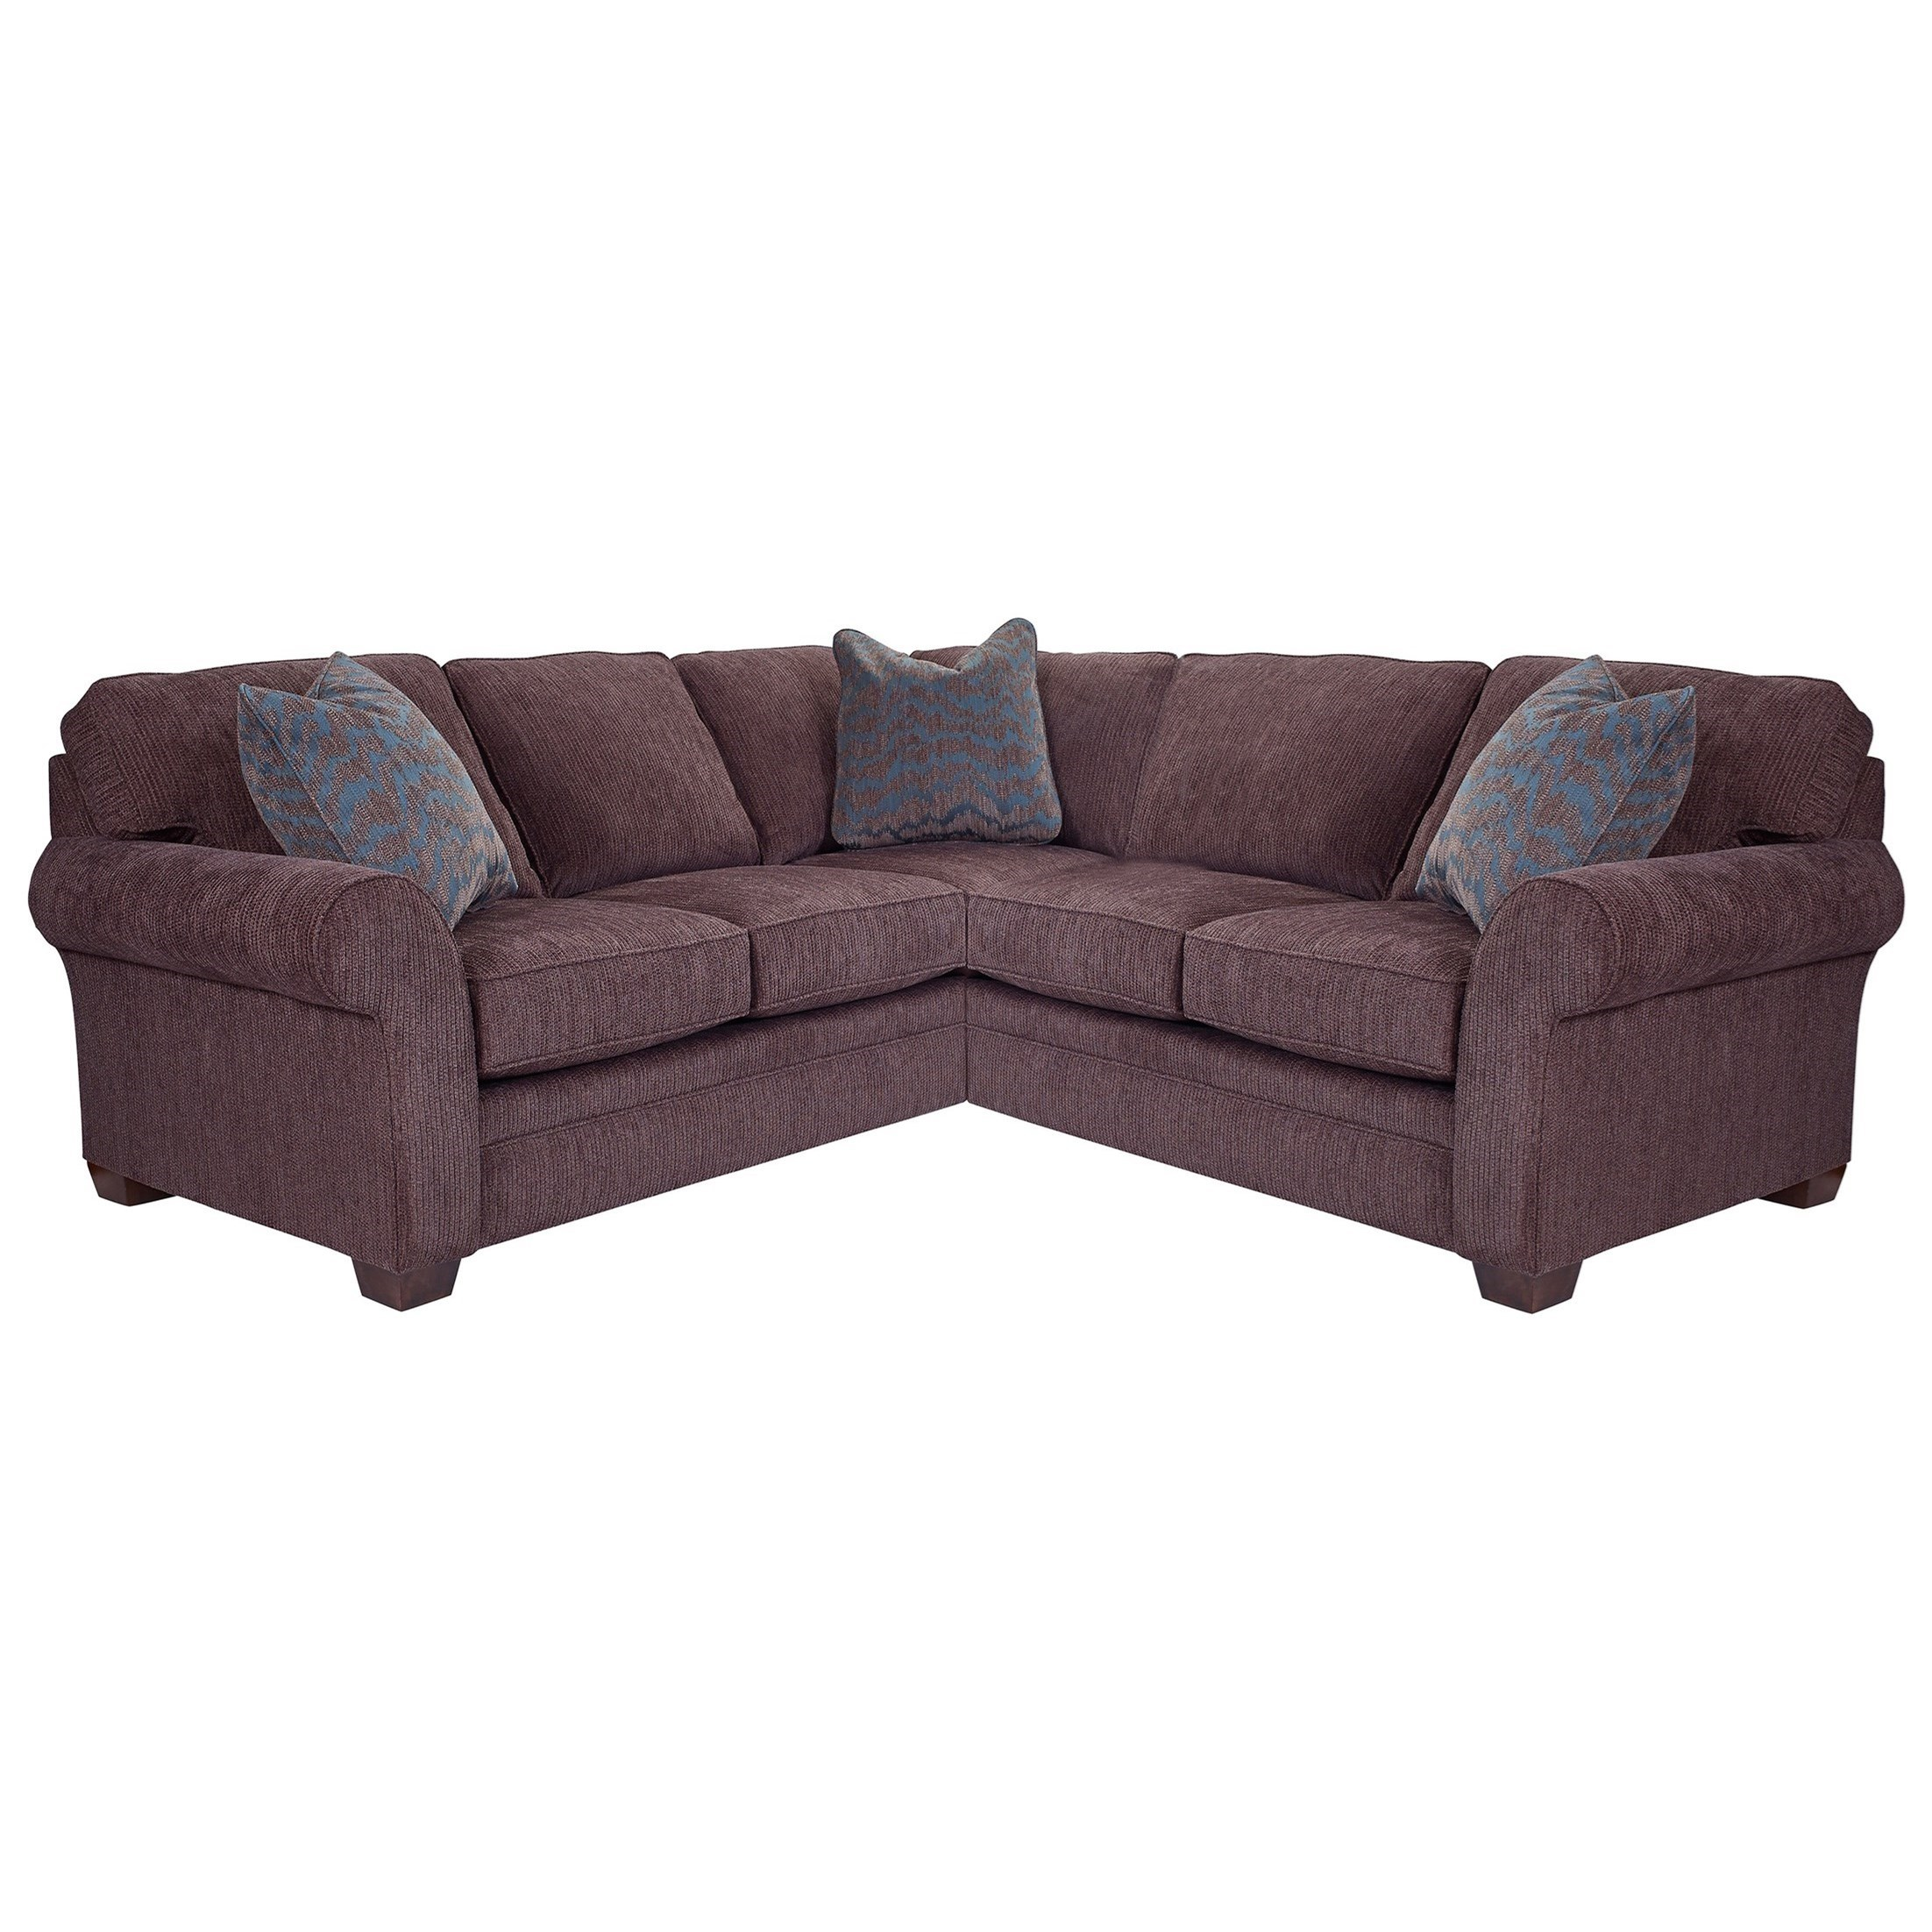 Sectional Sofas Payment Plan